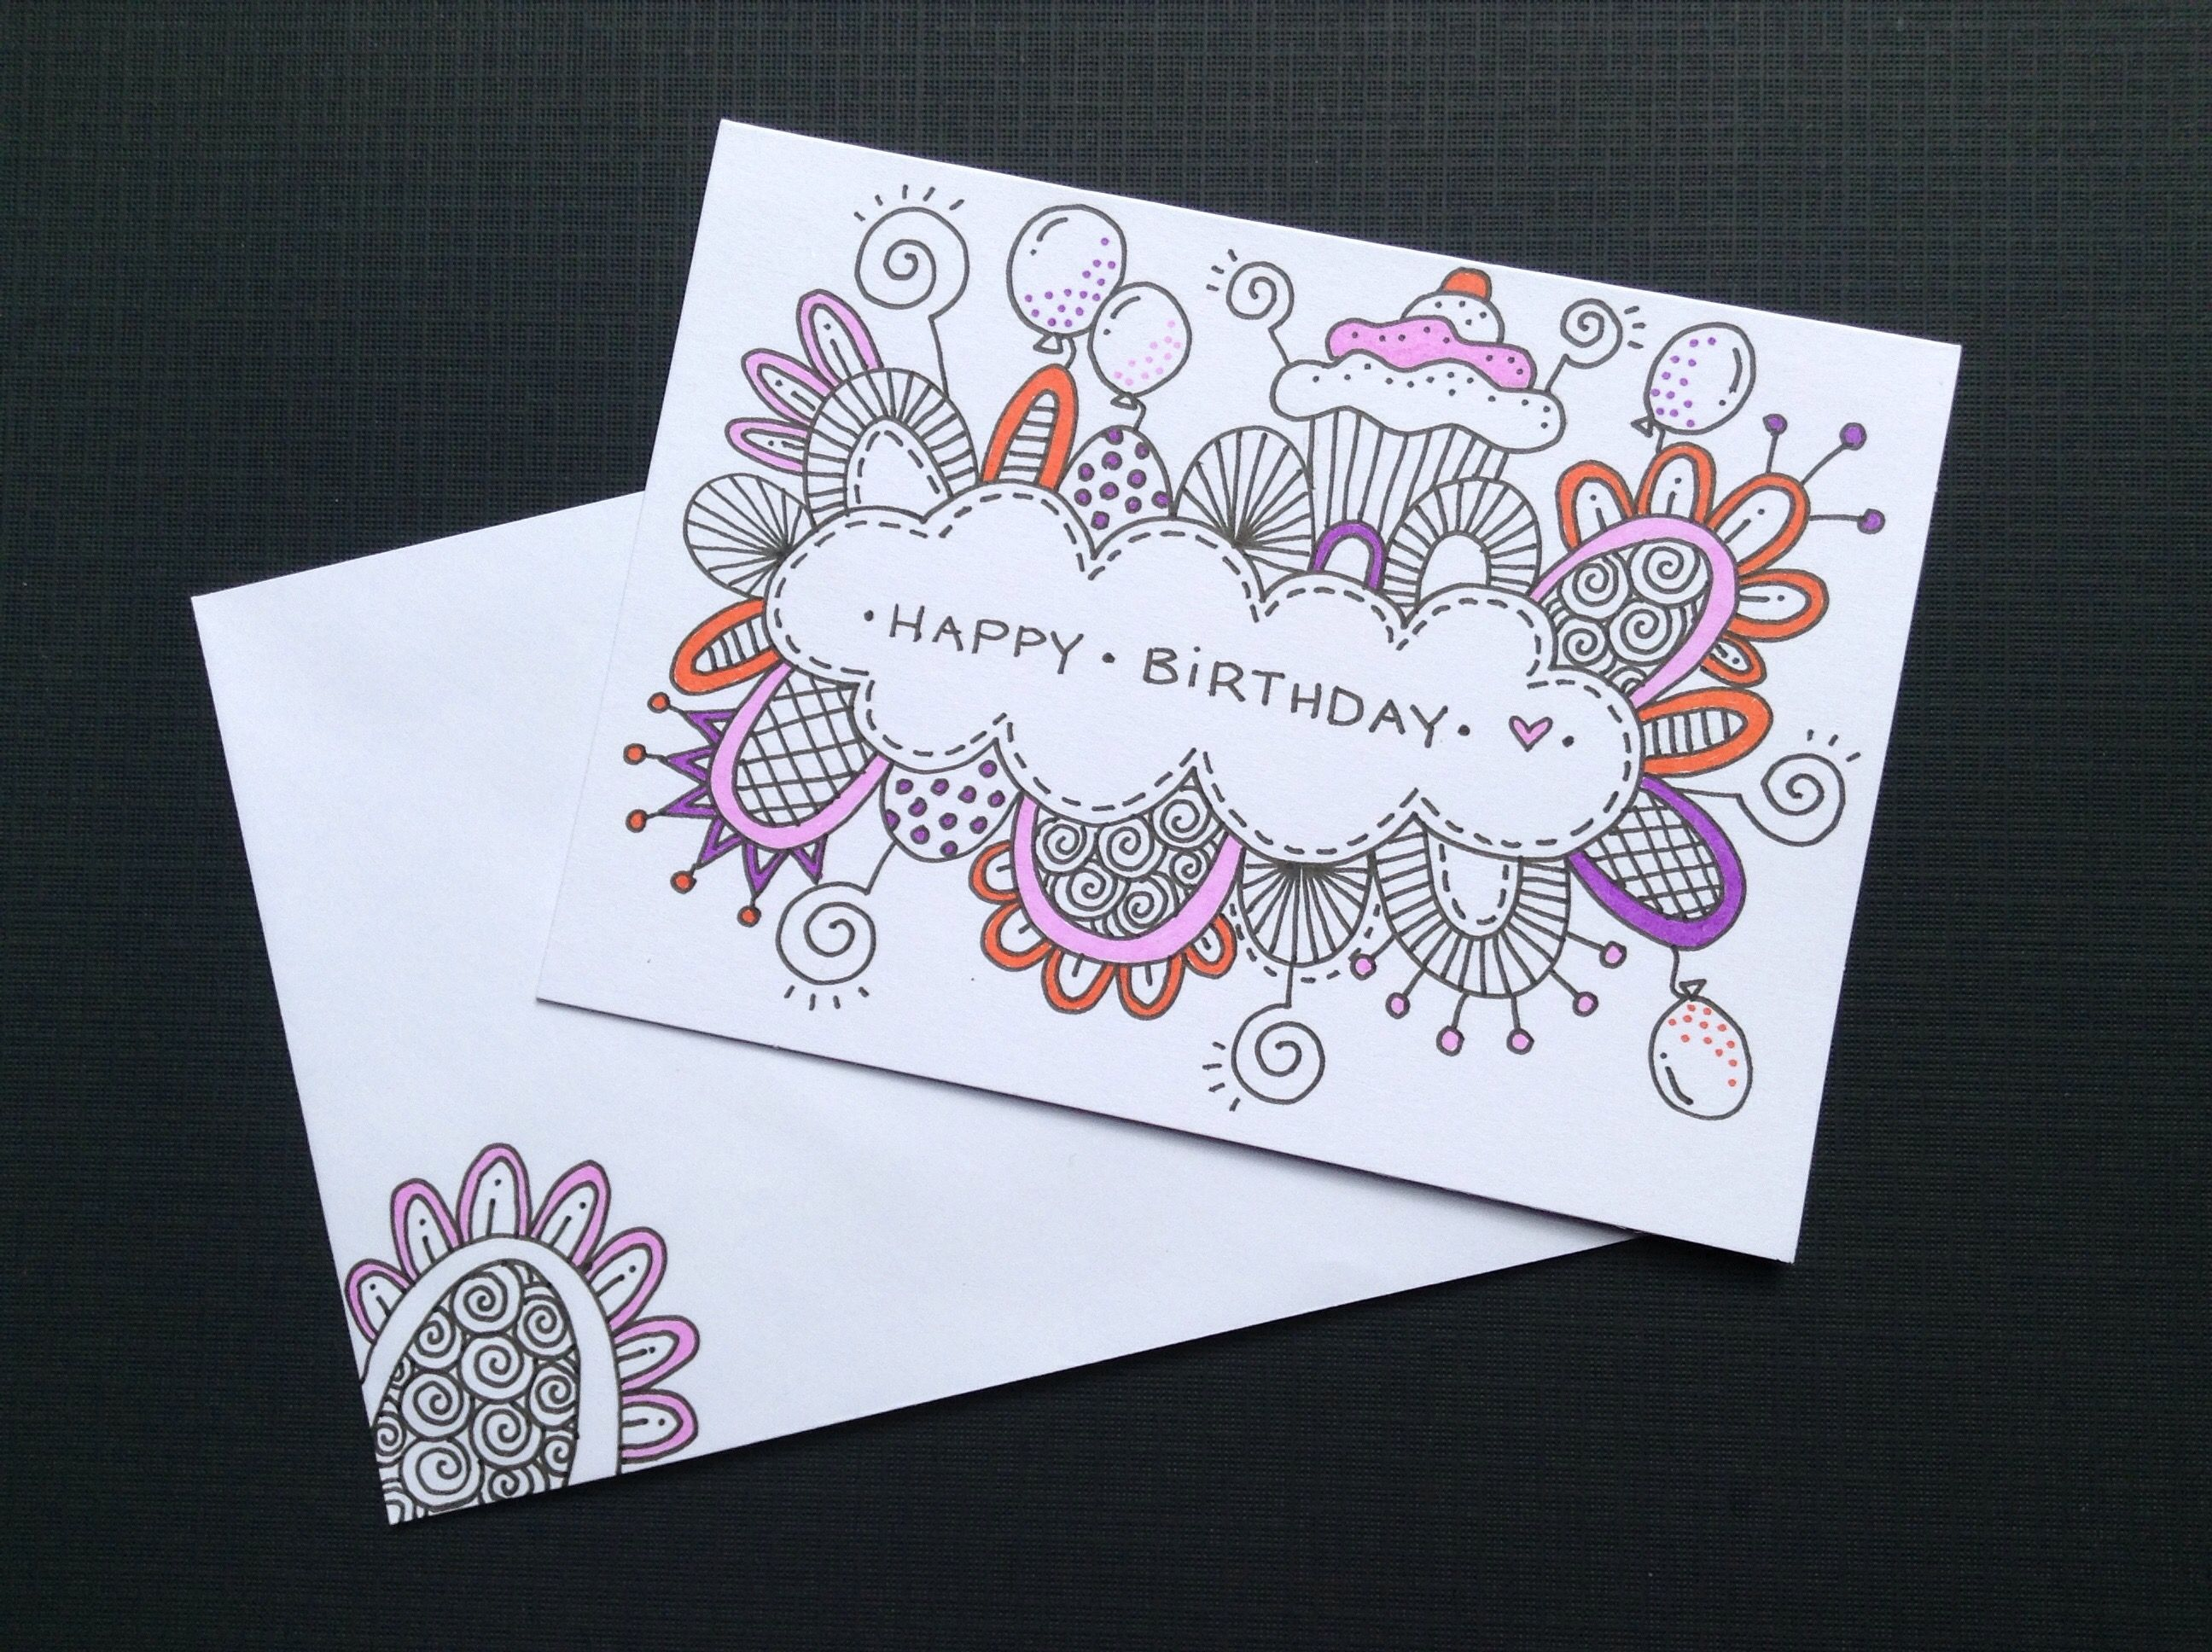 Happy Birthday Doodle – Doodle Birthday Card